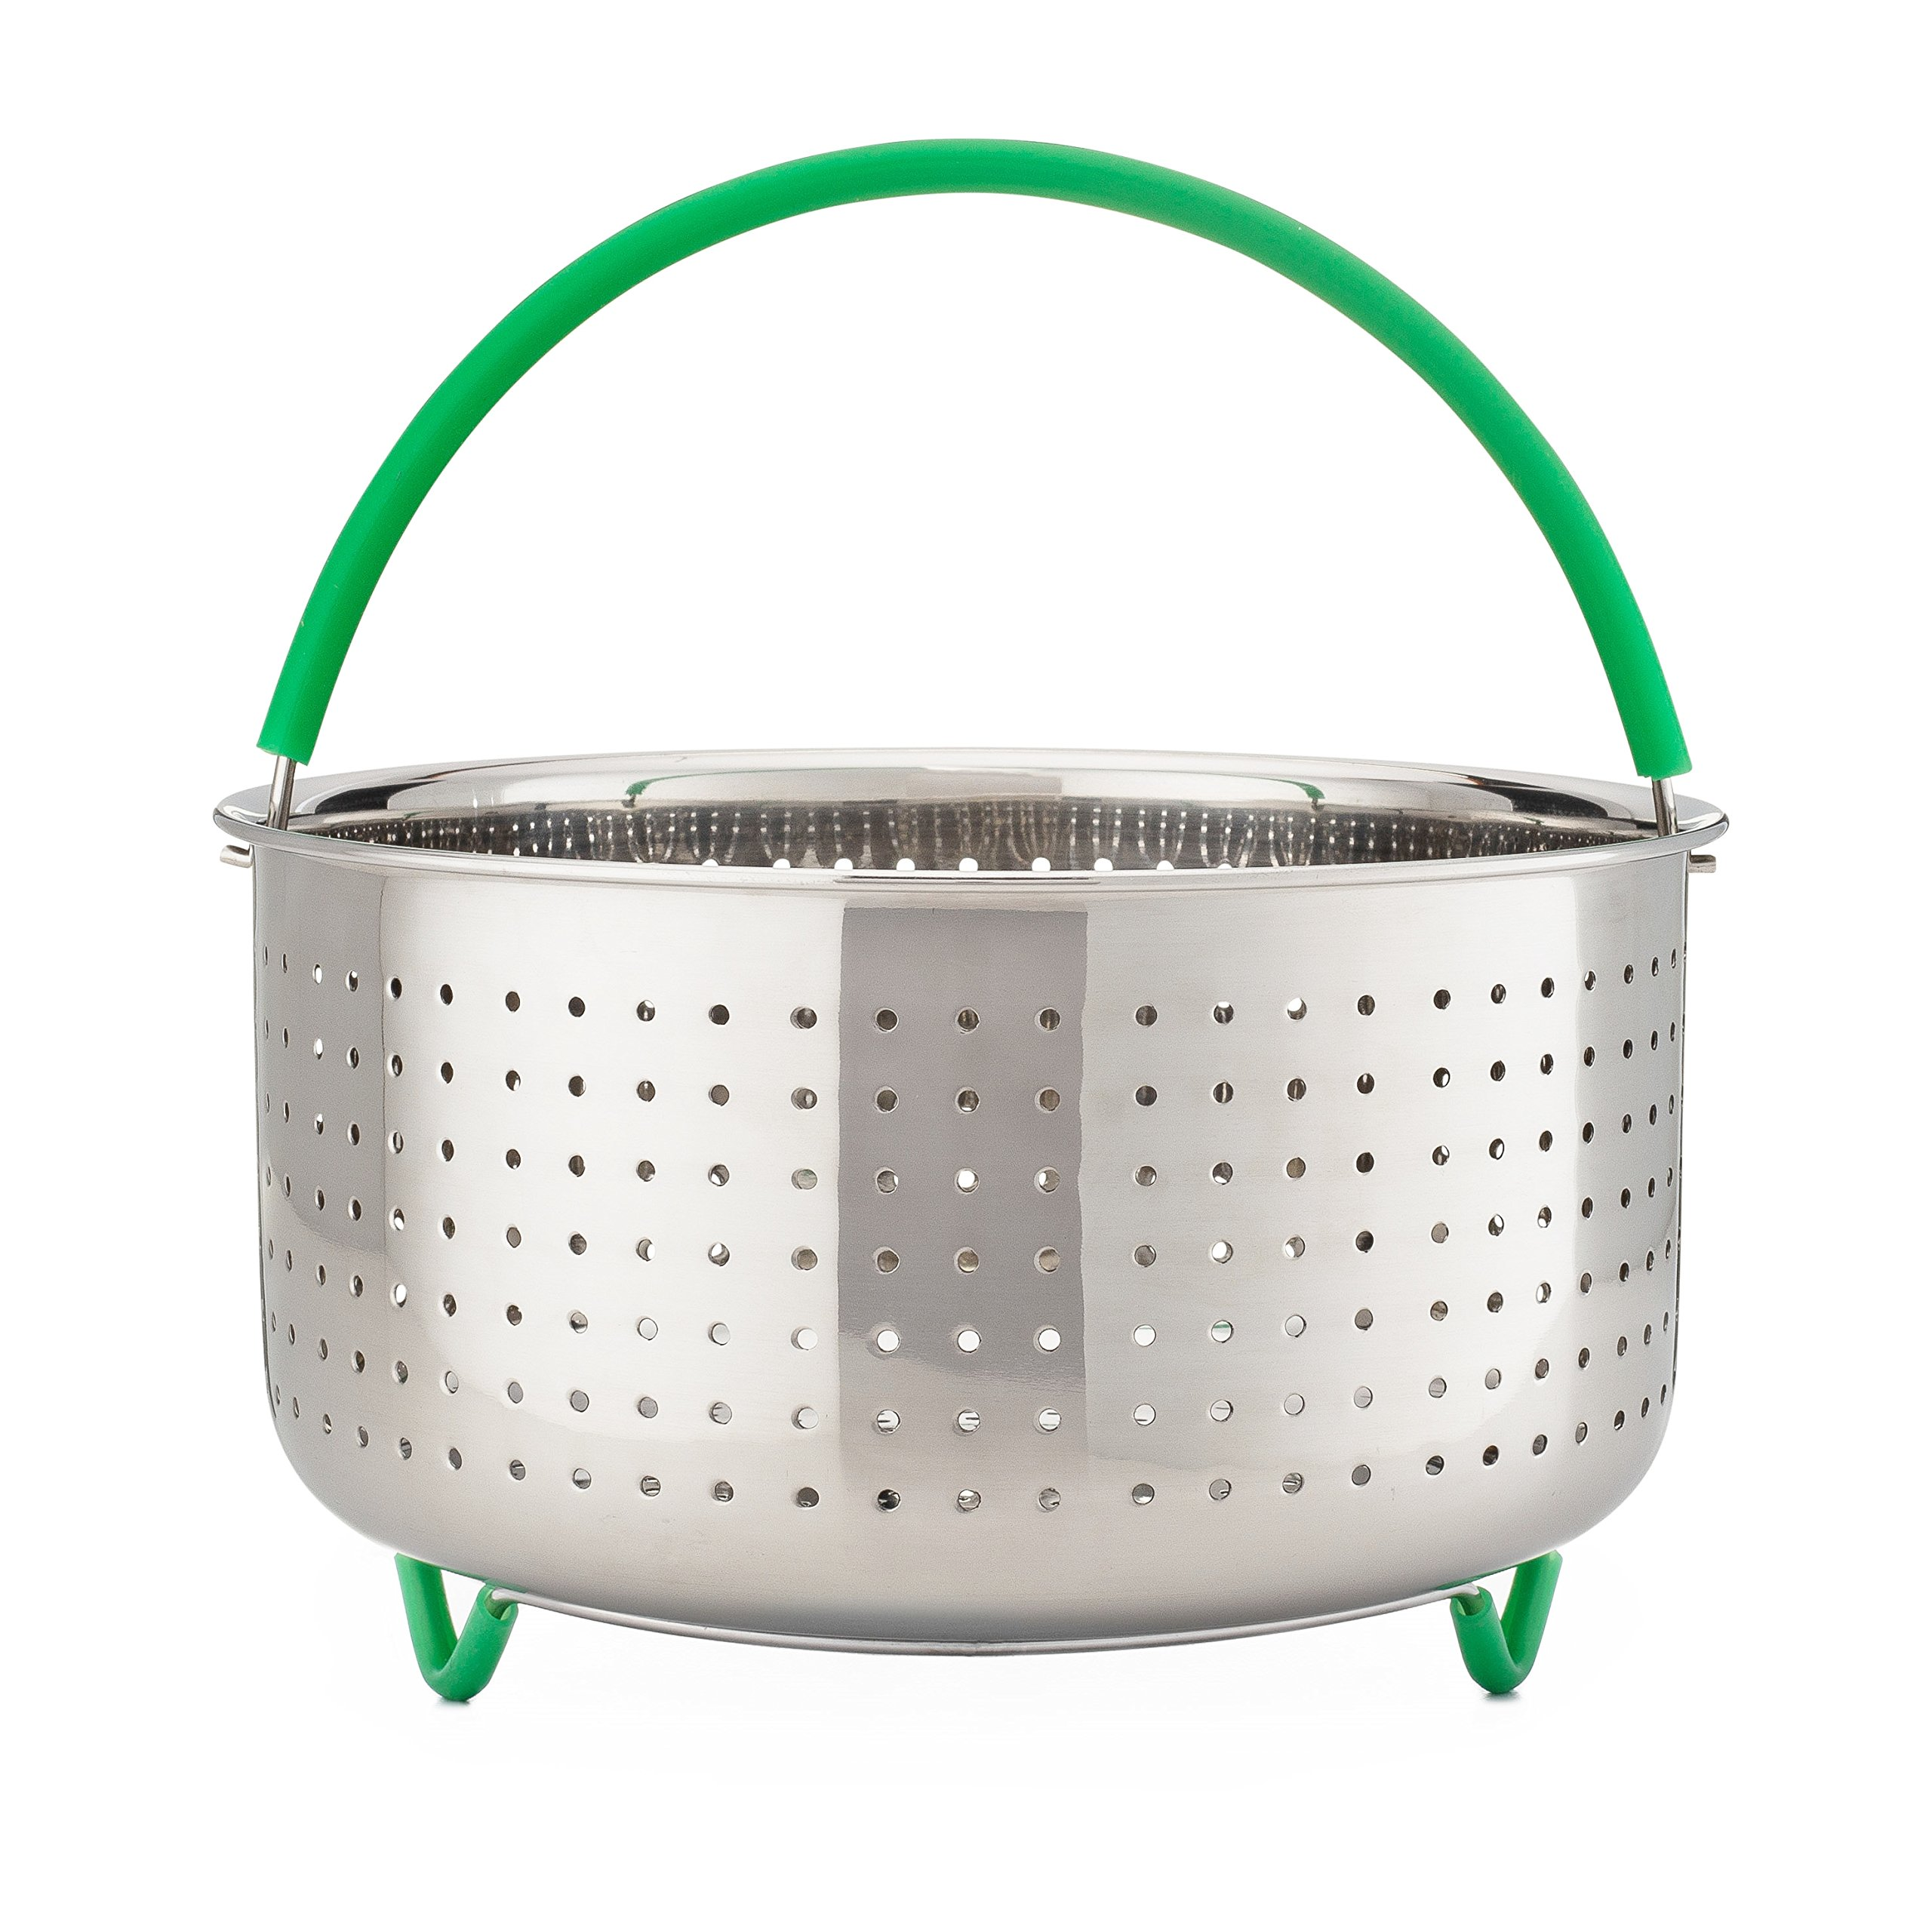 The Original GREEN STEAM 6 qt Instant Pot Steamer Basket Insert Accessories [ Also Fits 5qt & 8qt ] Stainless Steel, Silicone Handle & Legs - Fits Instapot, Other Pressure Cookers + BONUS Recipe Book!